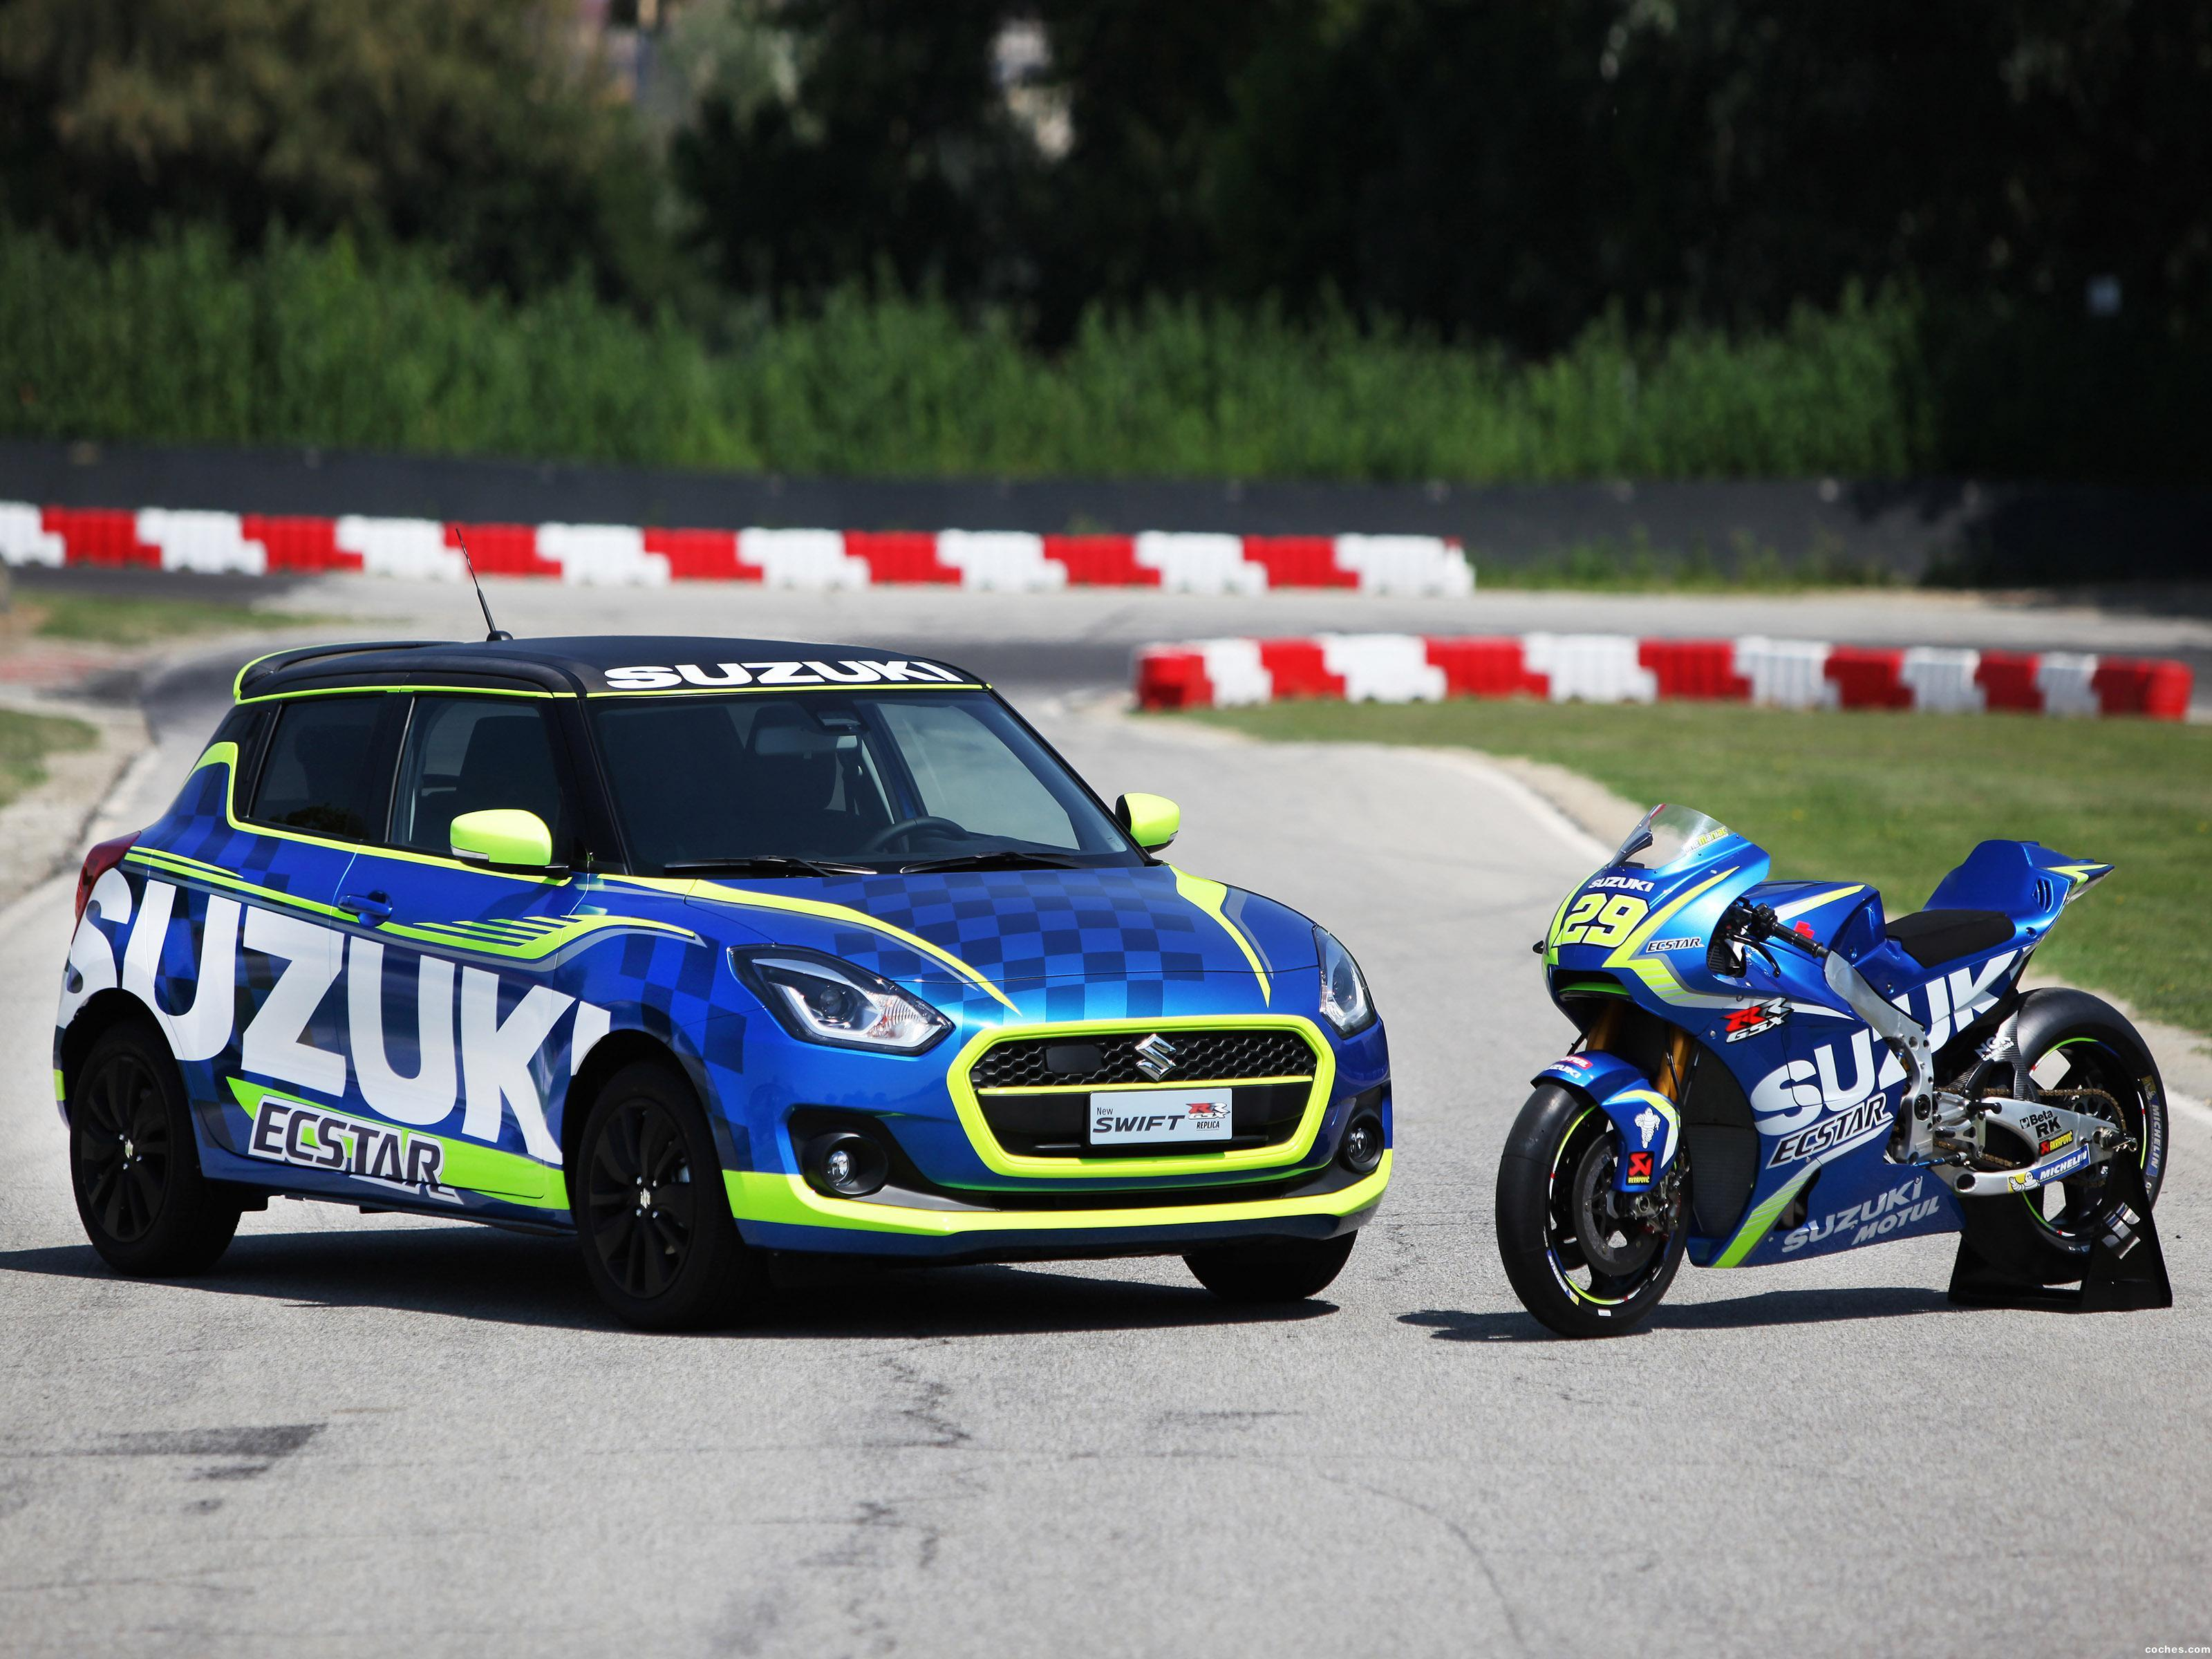 suzuki_swift-gsx-rr-replica-2017_r18.jpg